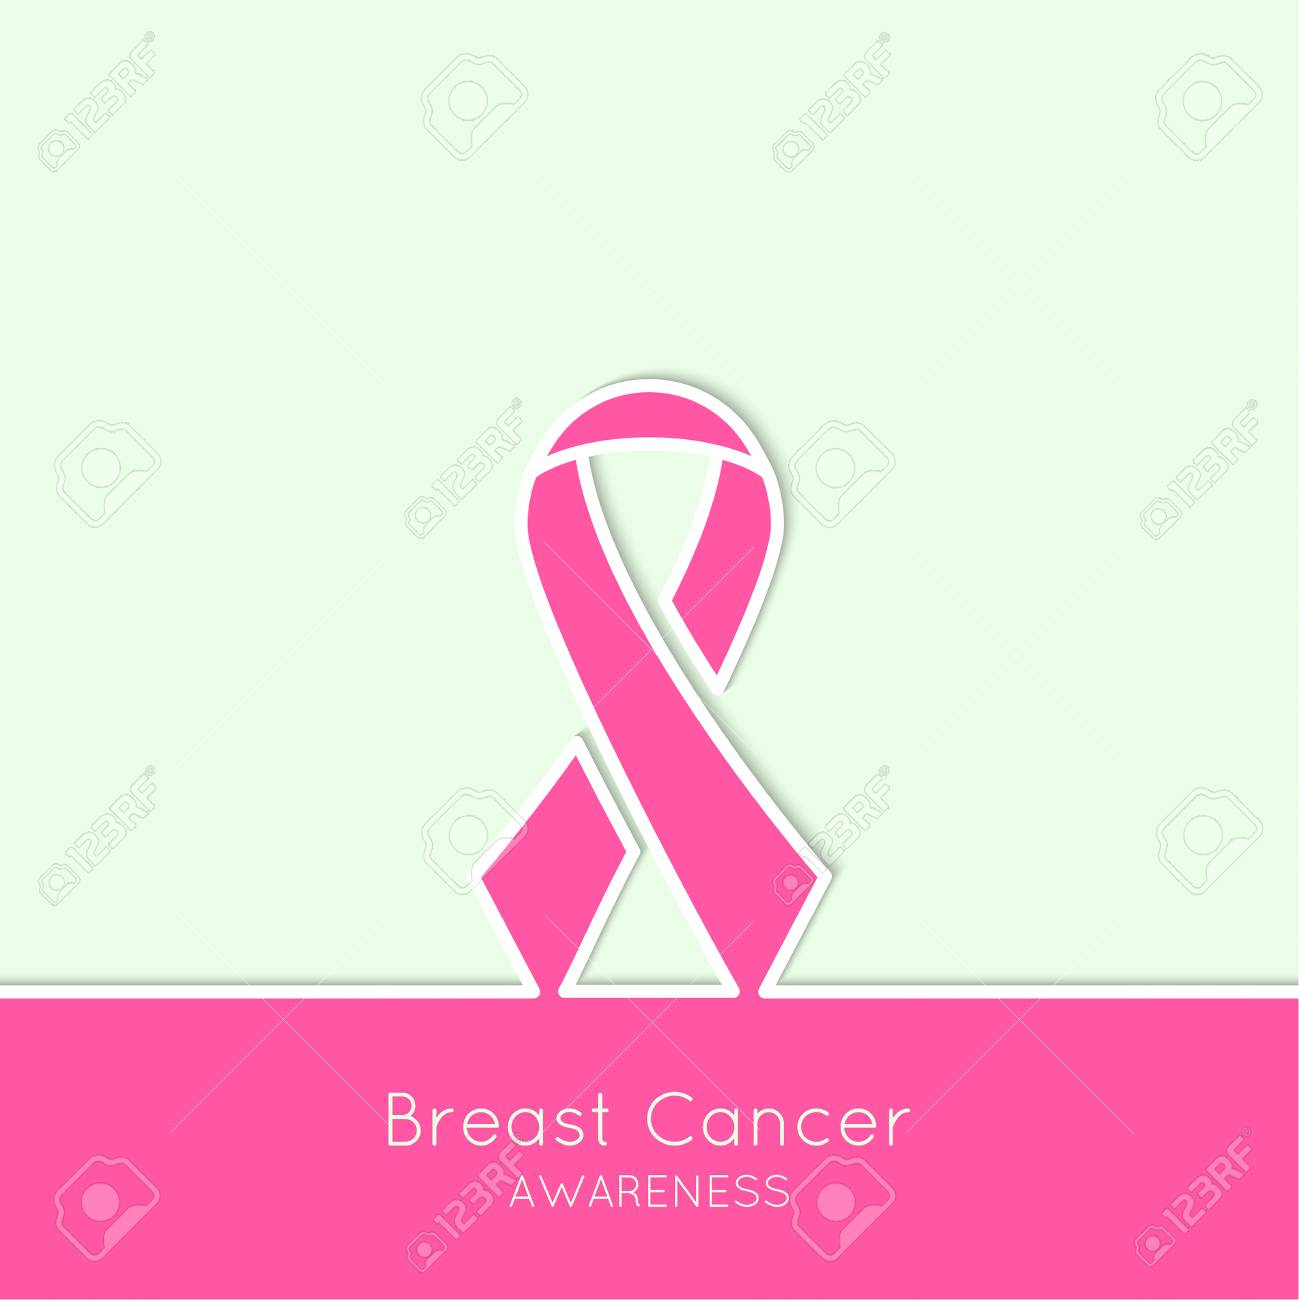 Breast Cancer Awareness Ribbon Vector Icons Pink Outline